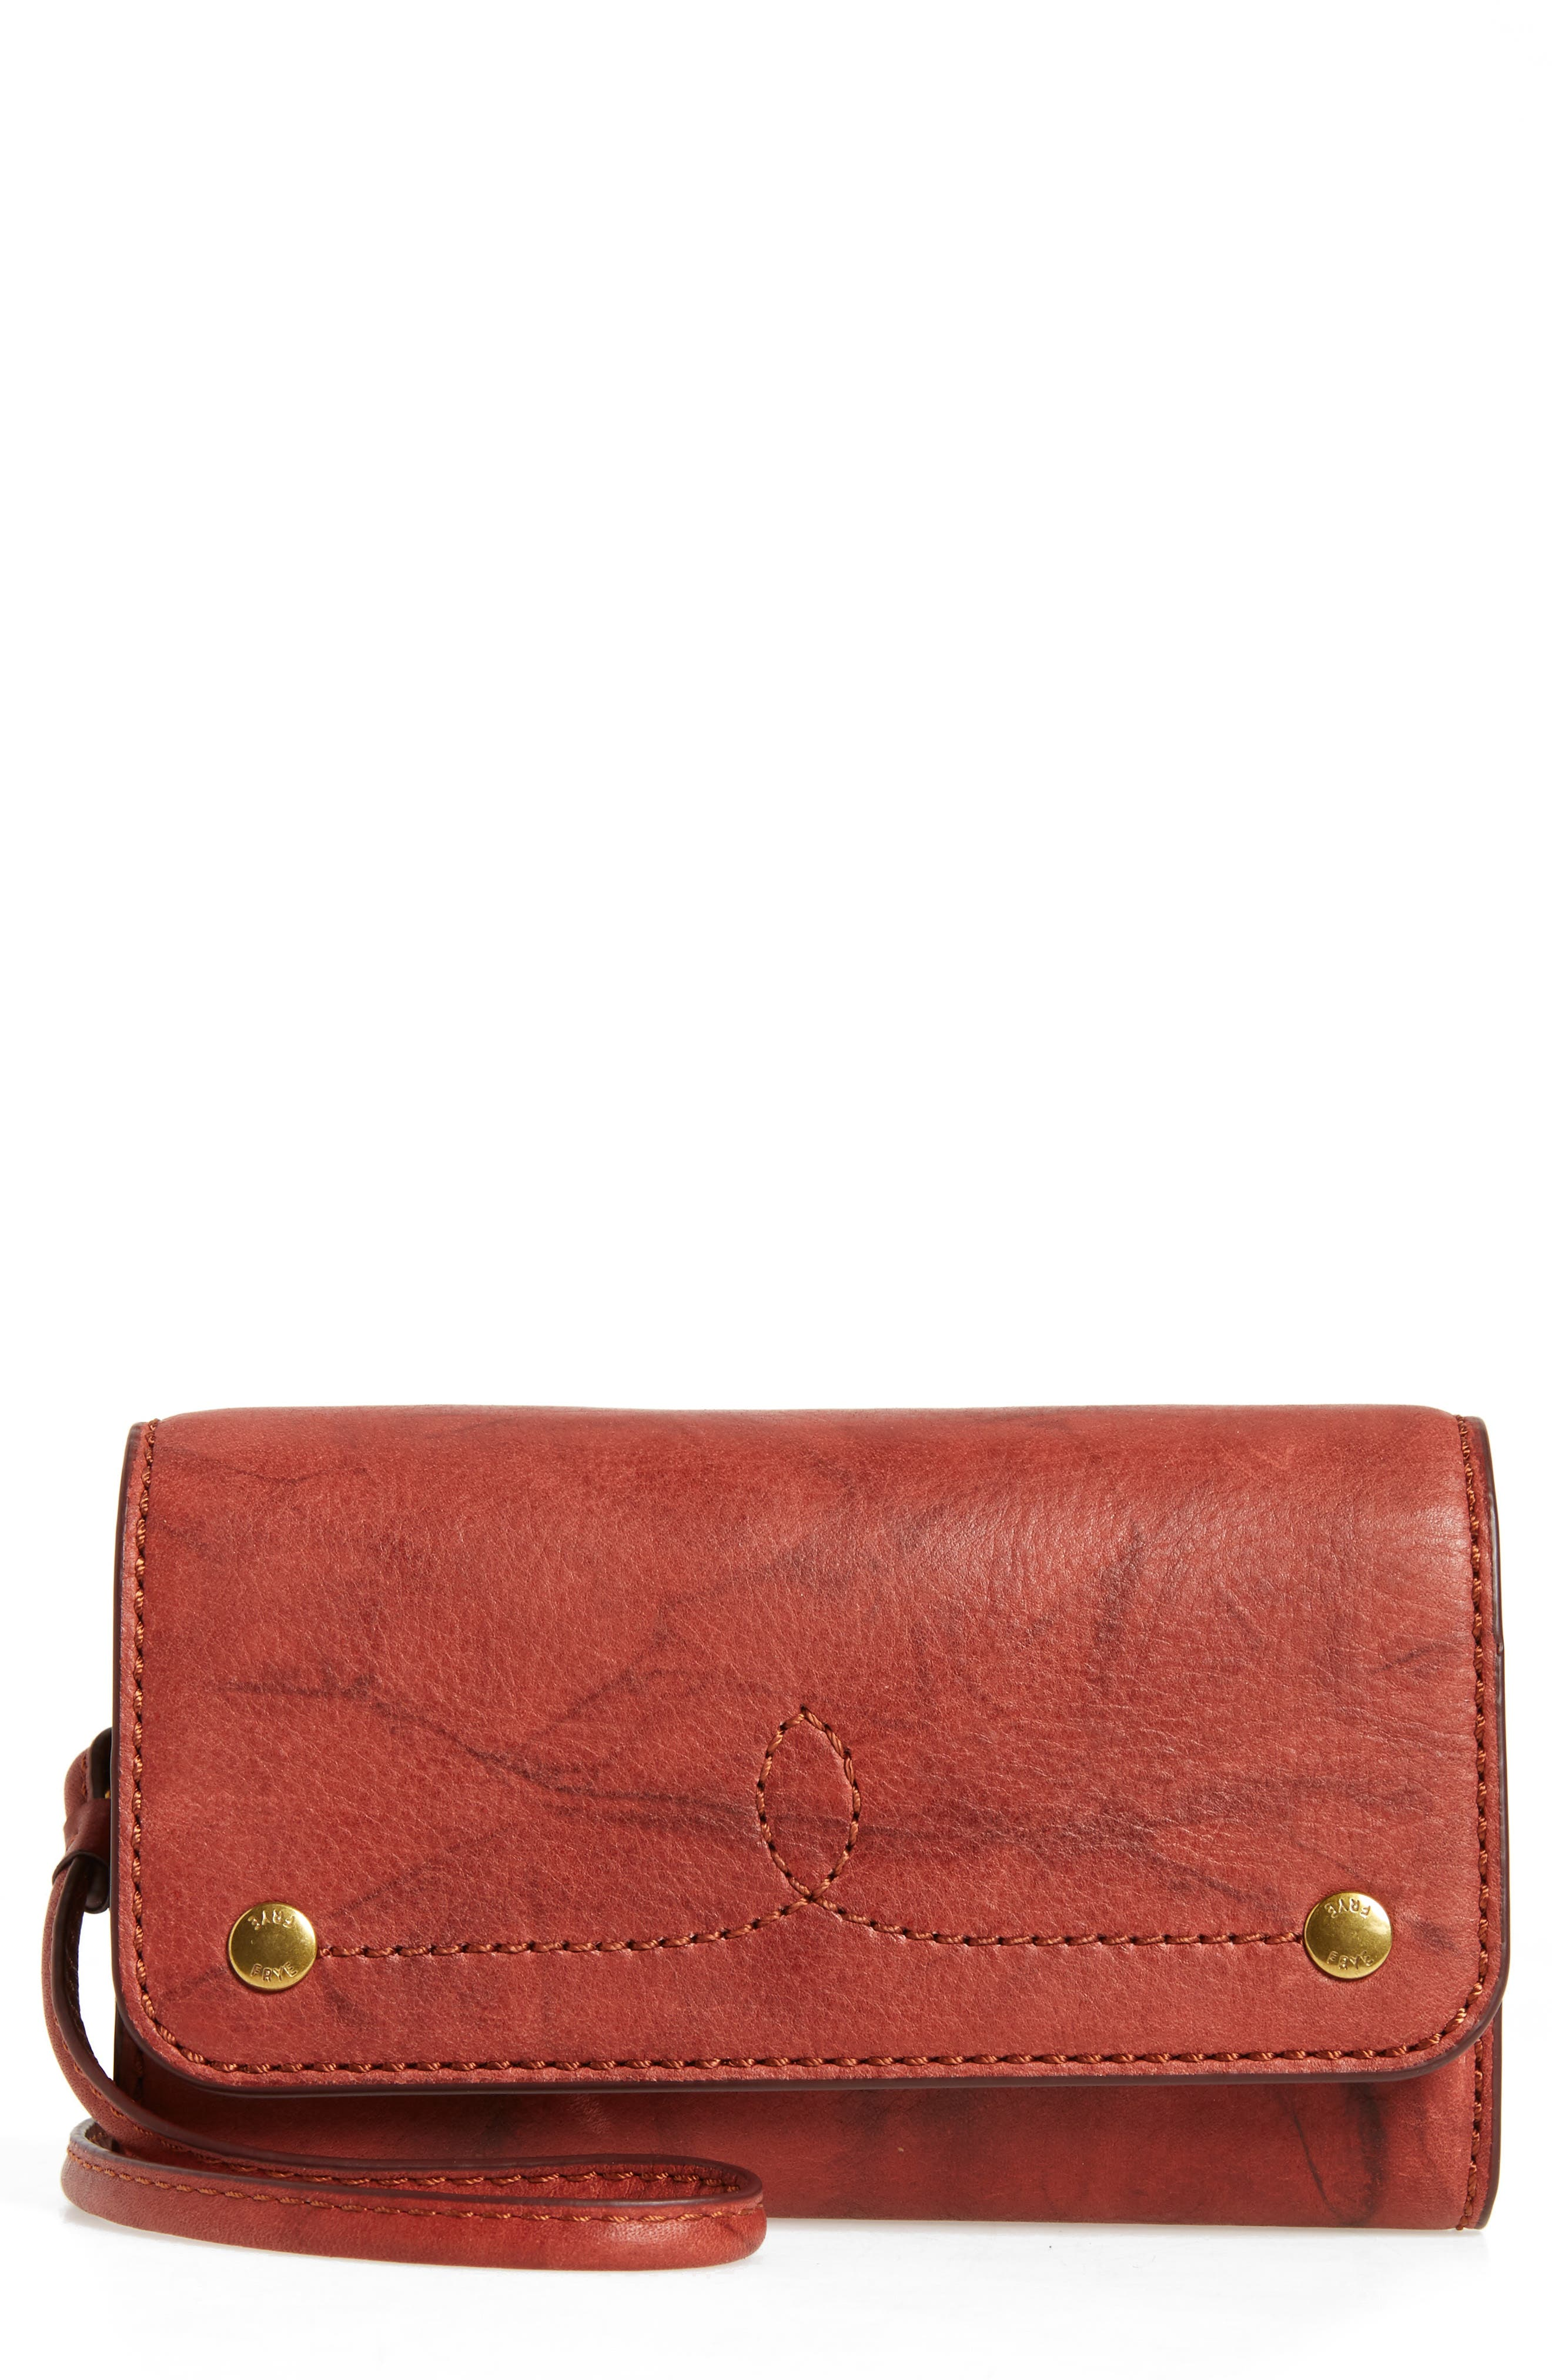 Campus Rivet Leather Smartphone Wallet with Crossbody Strap,                             Main thumbnail 1, color,                             Burnt Red